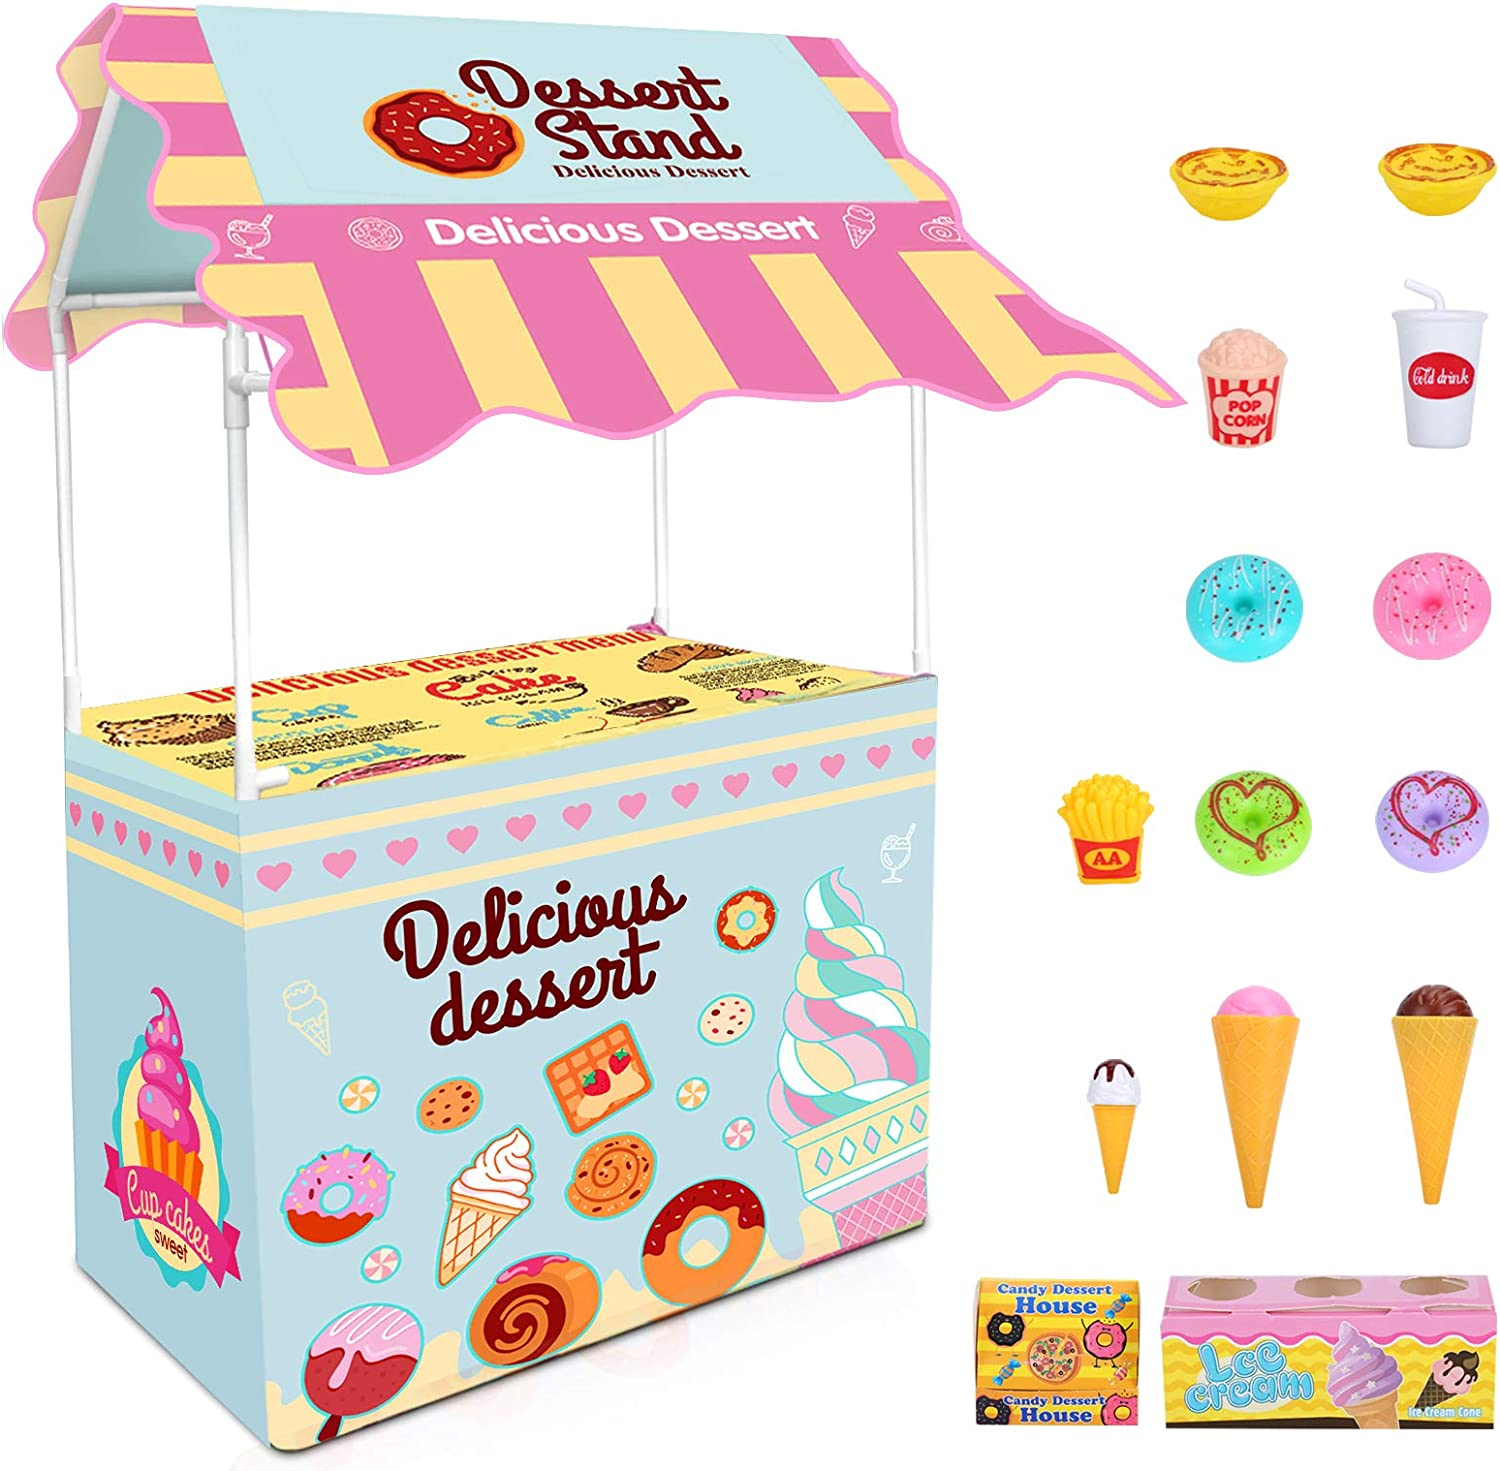 ISKYDRAW Ice Cream Cart - Kids Ice Cream Stand Shop Playset Toy Role Play Educational Colorful Pretend Play Food Business Cart Playstand Indoor Outside Playhouse Toy Present for Girls, KidsAges 3+